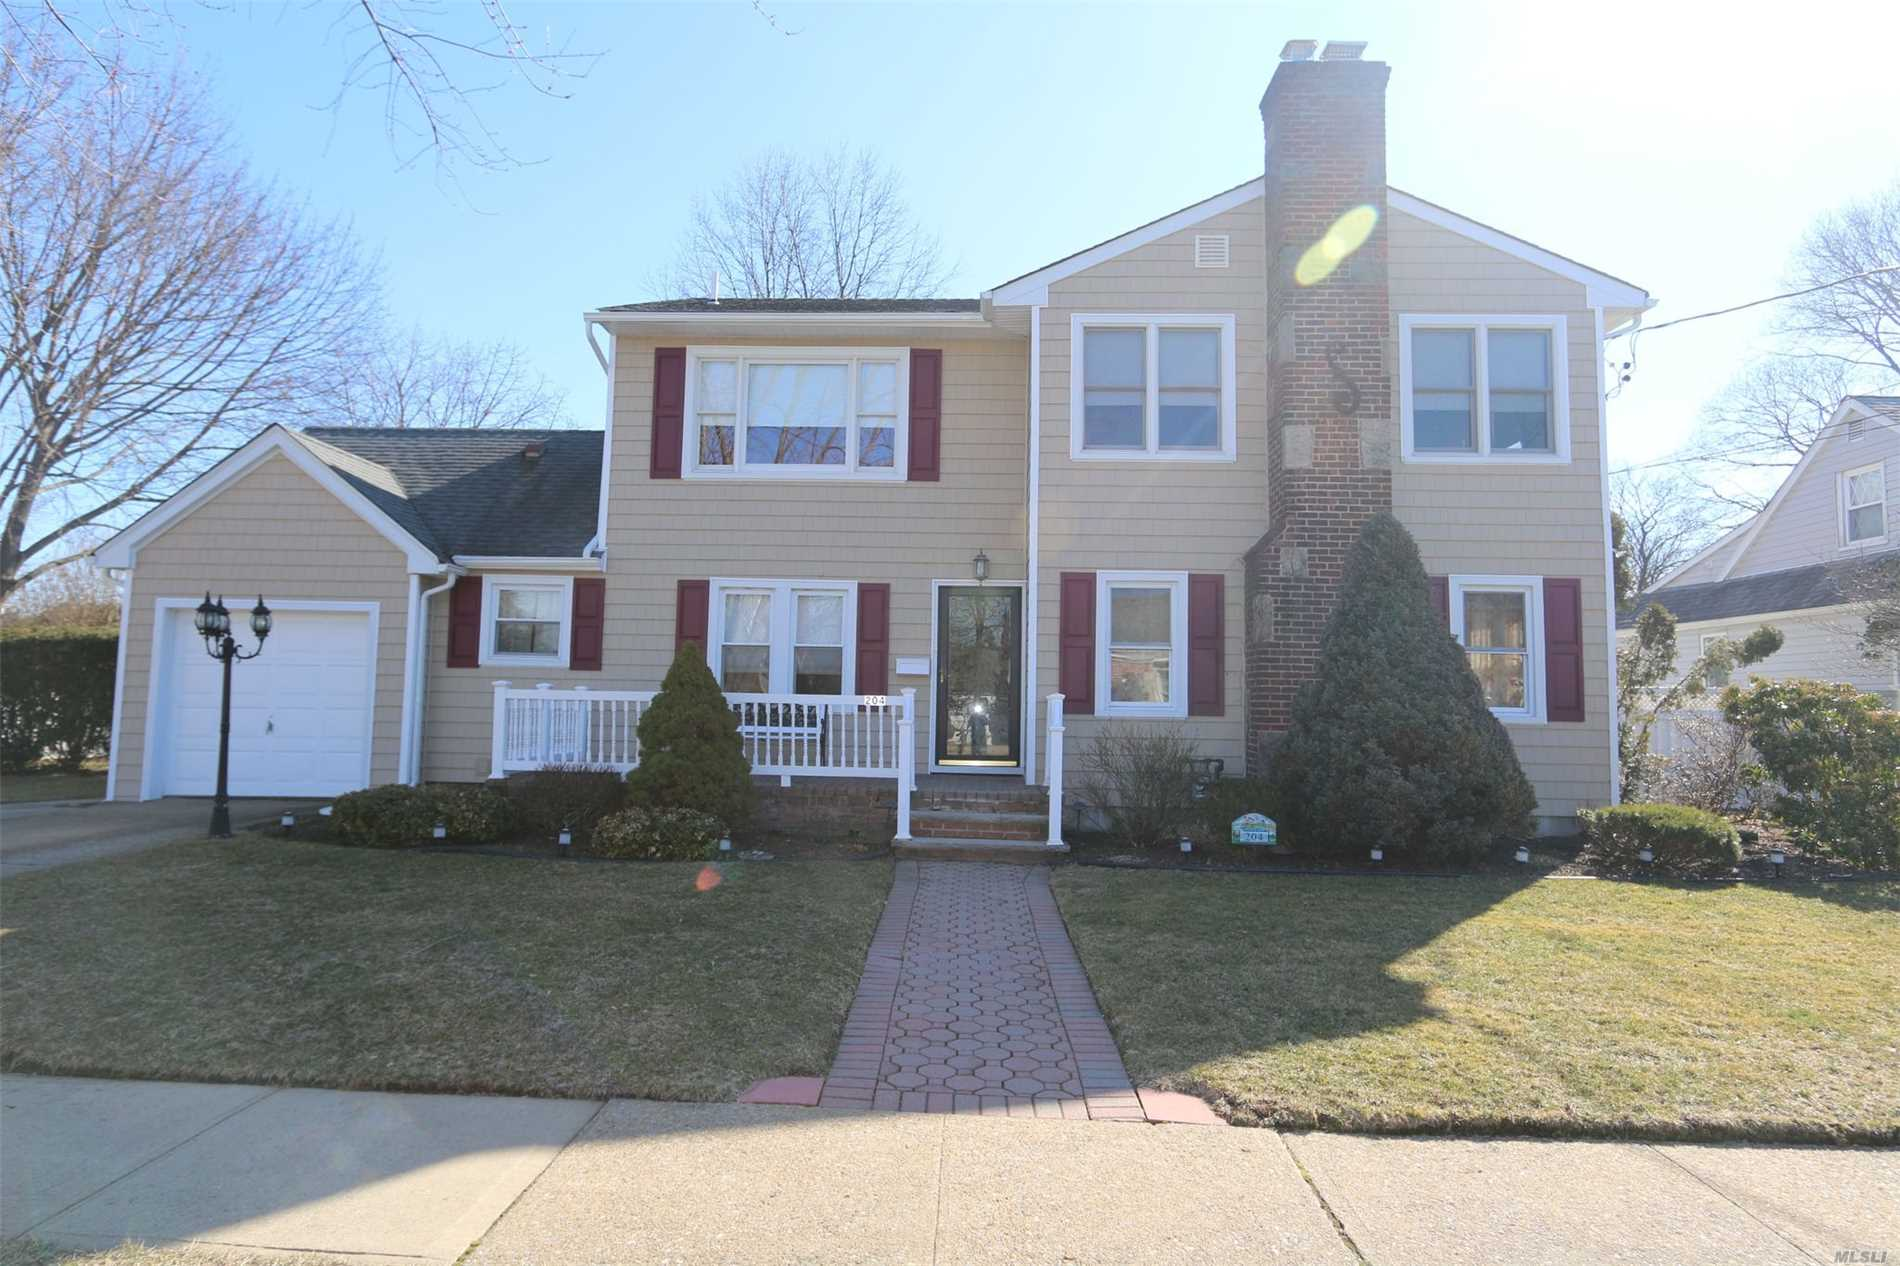 Welcome to Floral Park Crest. Mid-Block Colonial on 100x100. Home Features 3/4 Bedrooms and 2.5 Baths. Eat-in-Kitchen with Granite Counters, Living Room with Wood Burning Fireplace, Dining Room. Large Sun Room. New Siding, New Heating System, In-Ground Sprinklers.